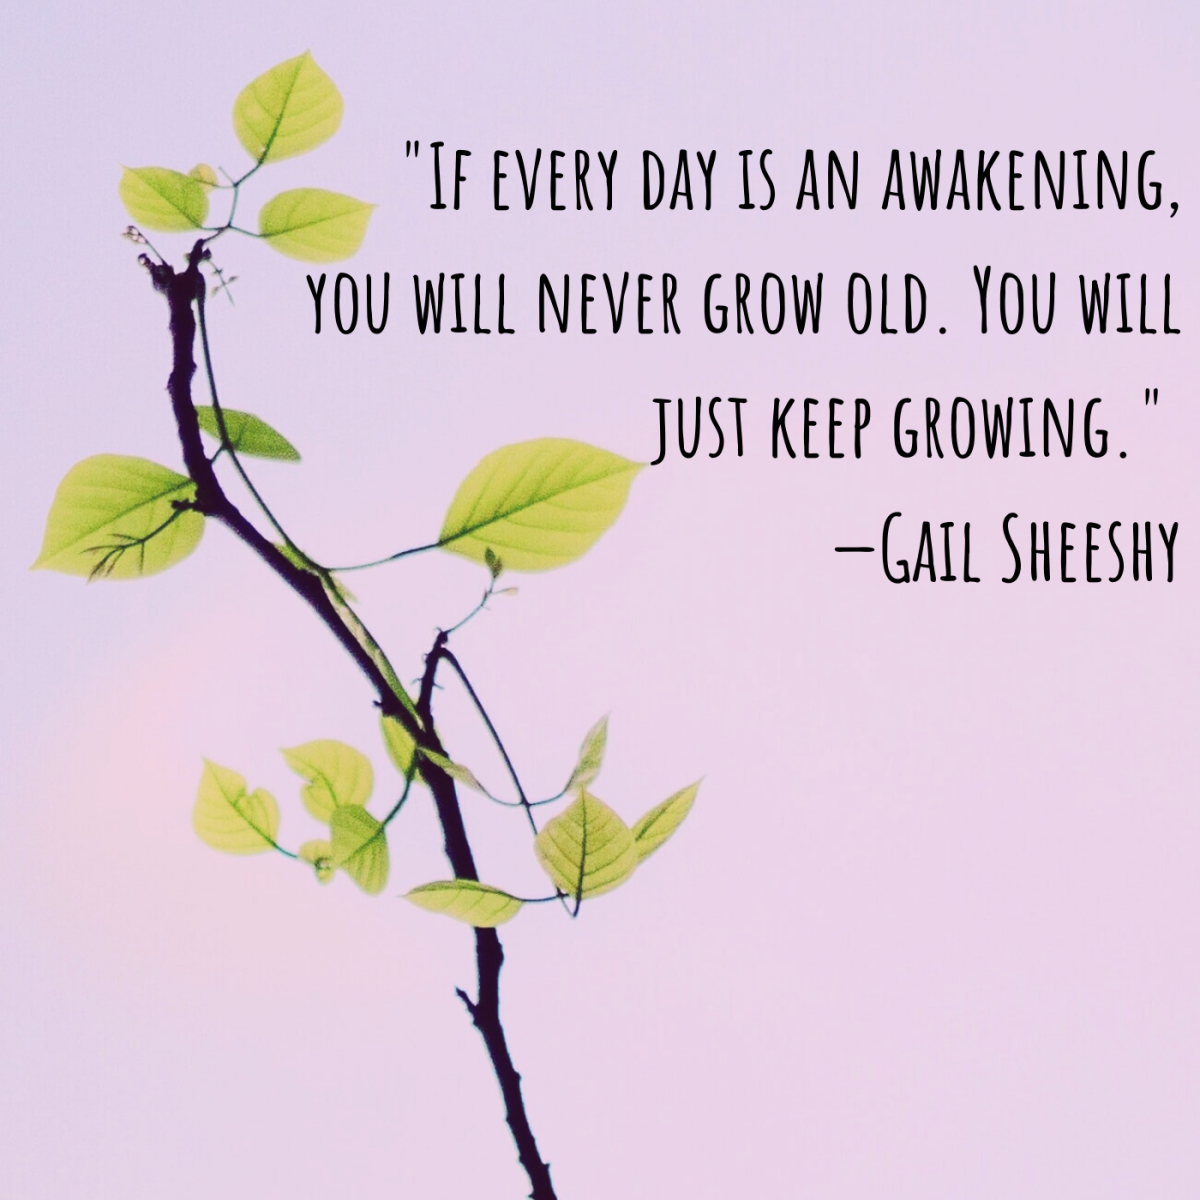 """If every day is an awakening, you will never grow old. You will just keep growing."" —Gail Sheeshy"